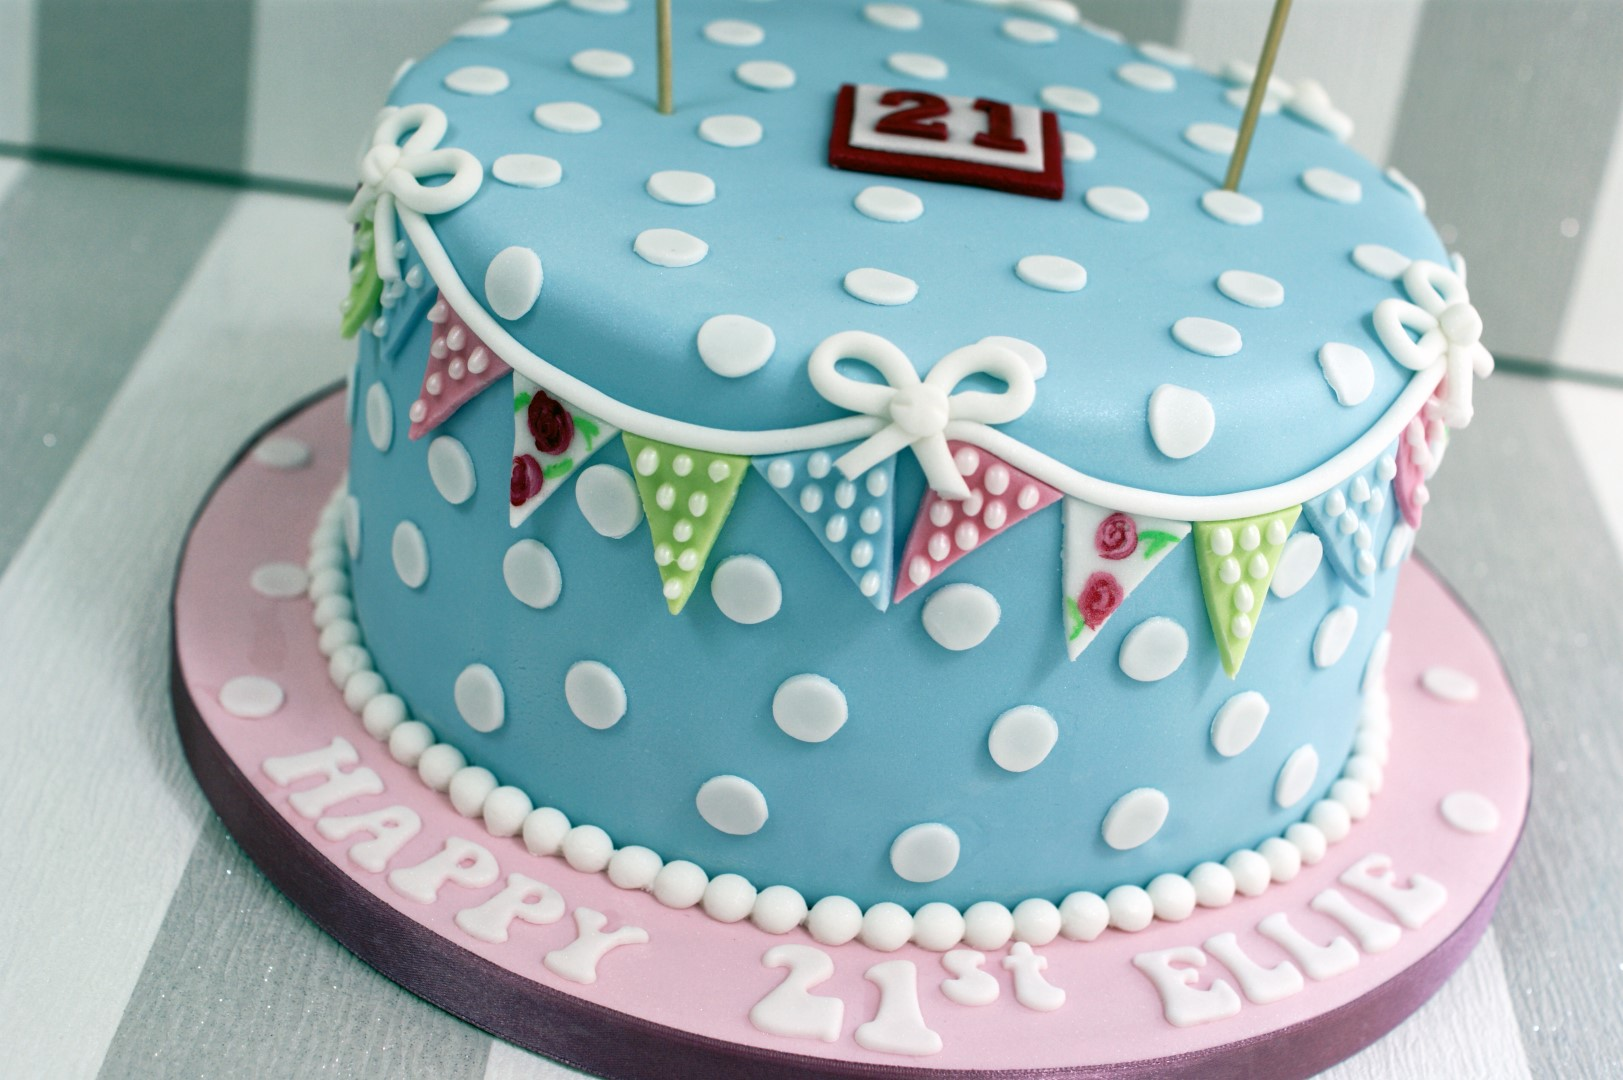 Cake Pictures For St Birthday